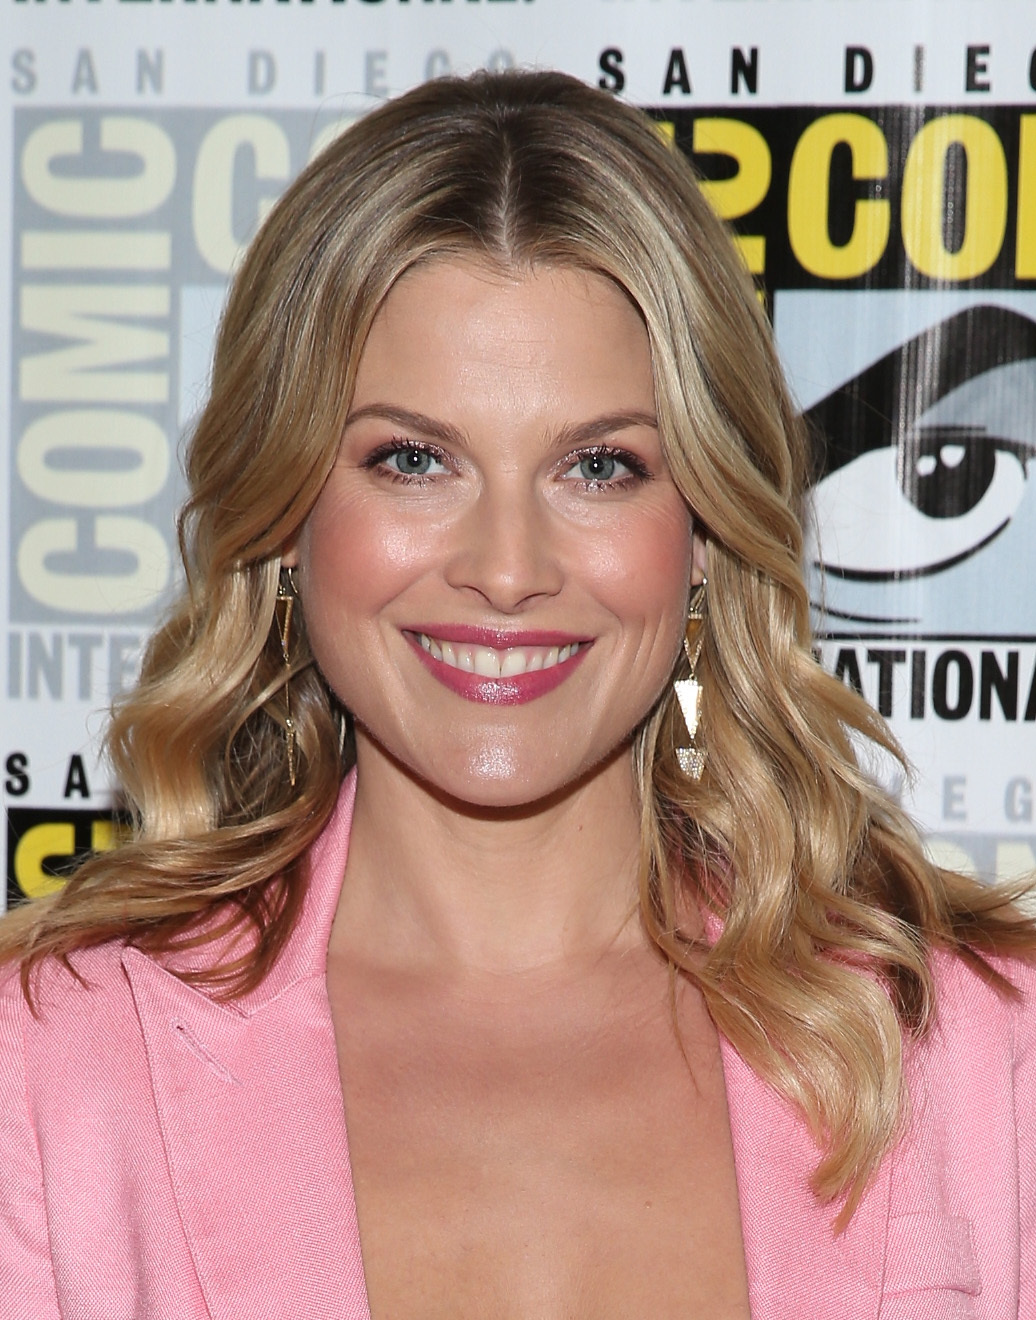 Ali Larter at an event for Legends (2014)